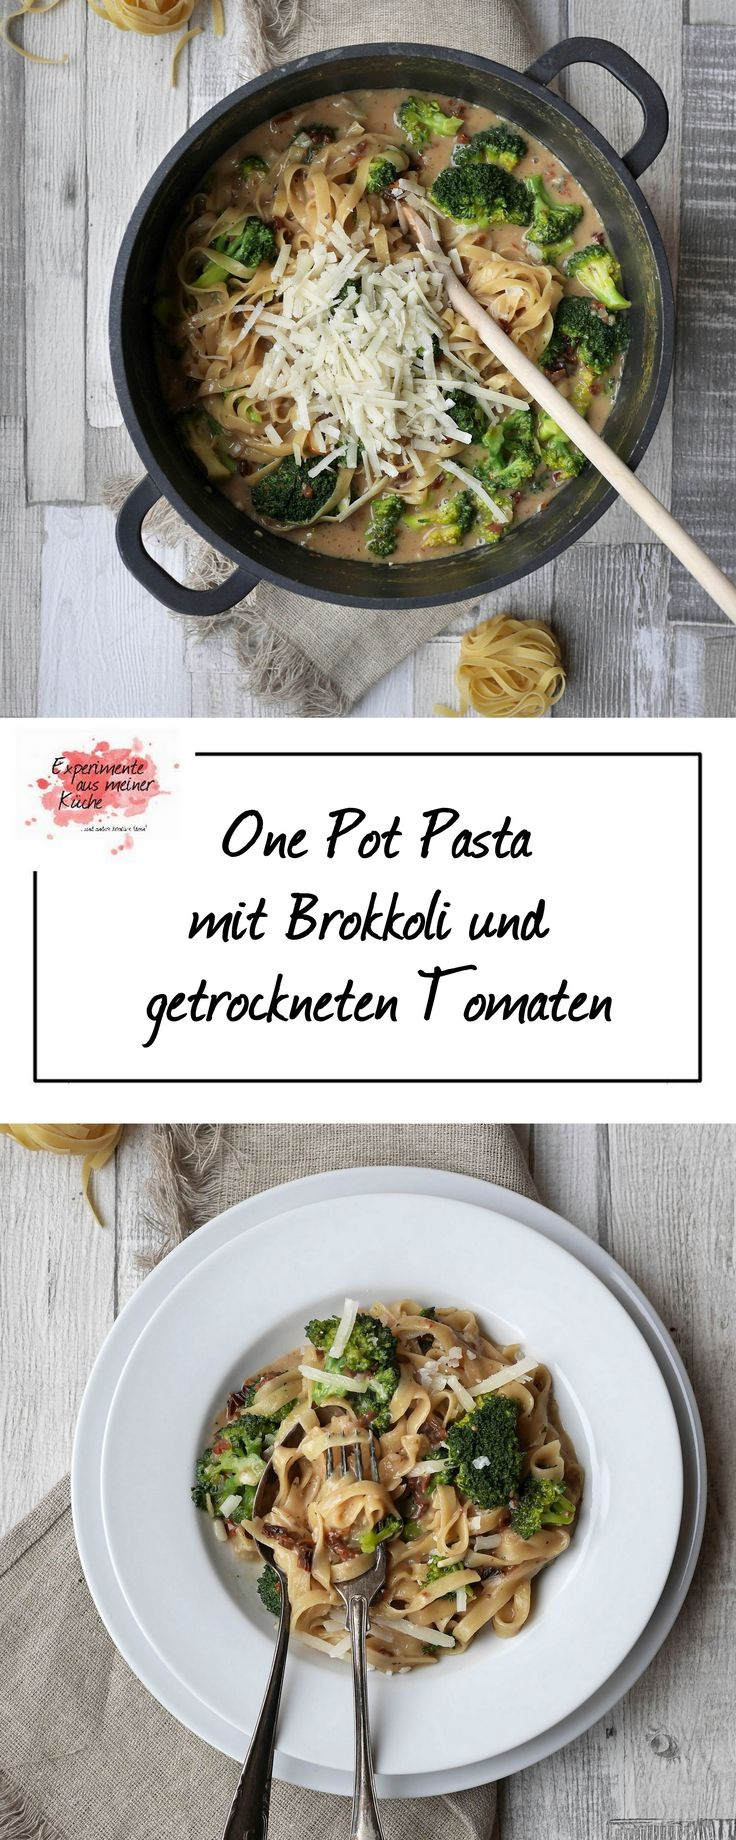 One Pot Pasta mit Brokkoli und getrockneten Tomaten | Kochen | Rezept | Weight Watchers